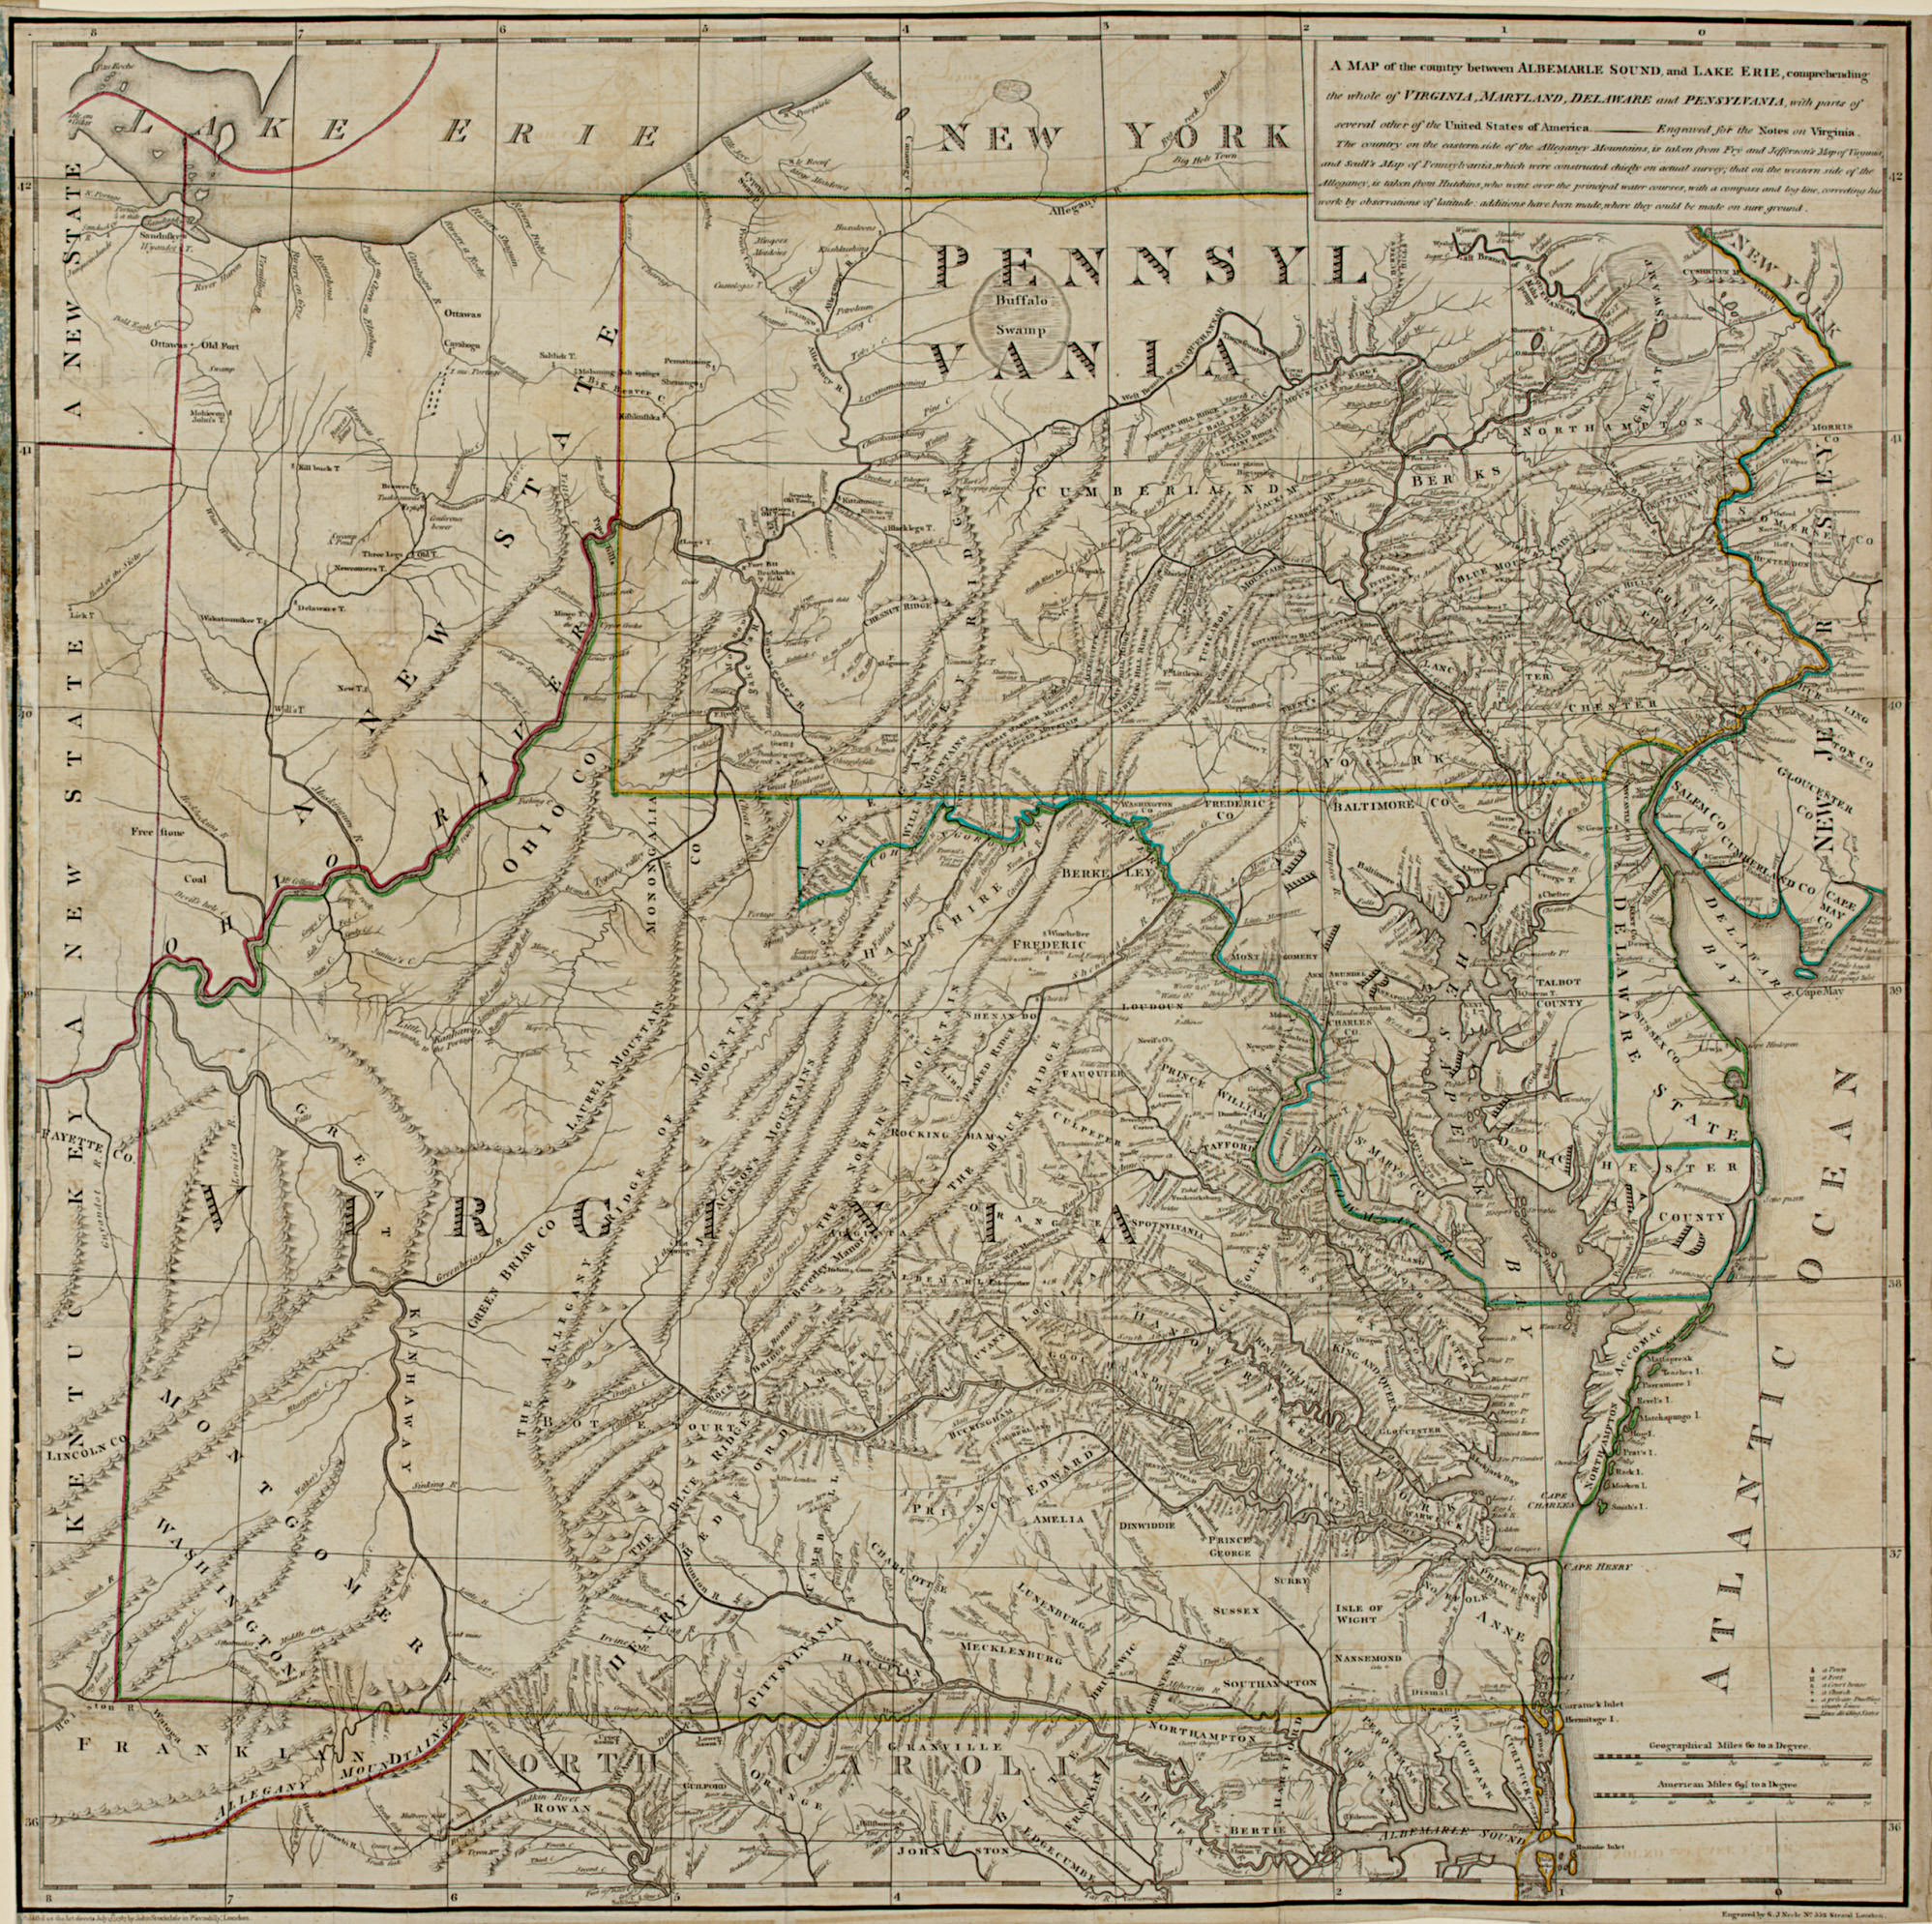 [VIRGINIA]. A Map of the Count